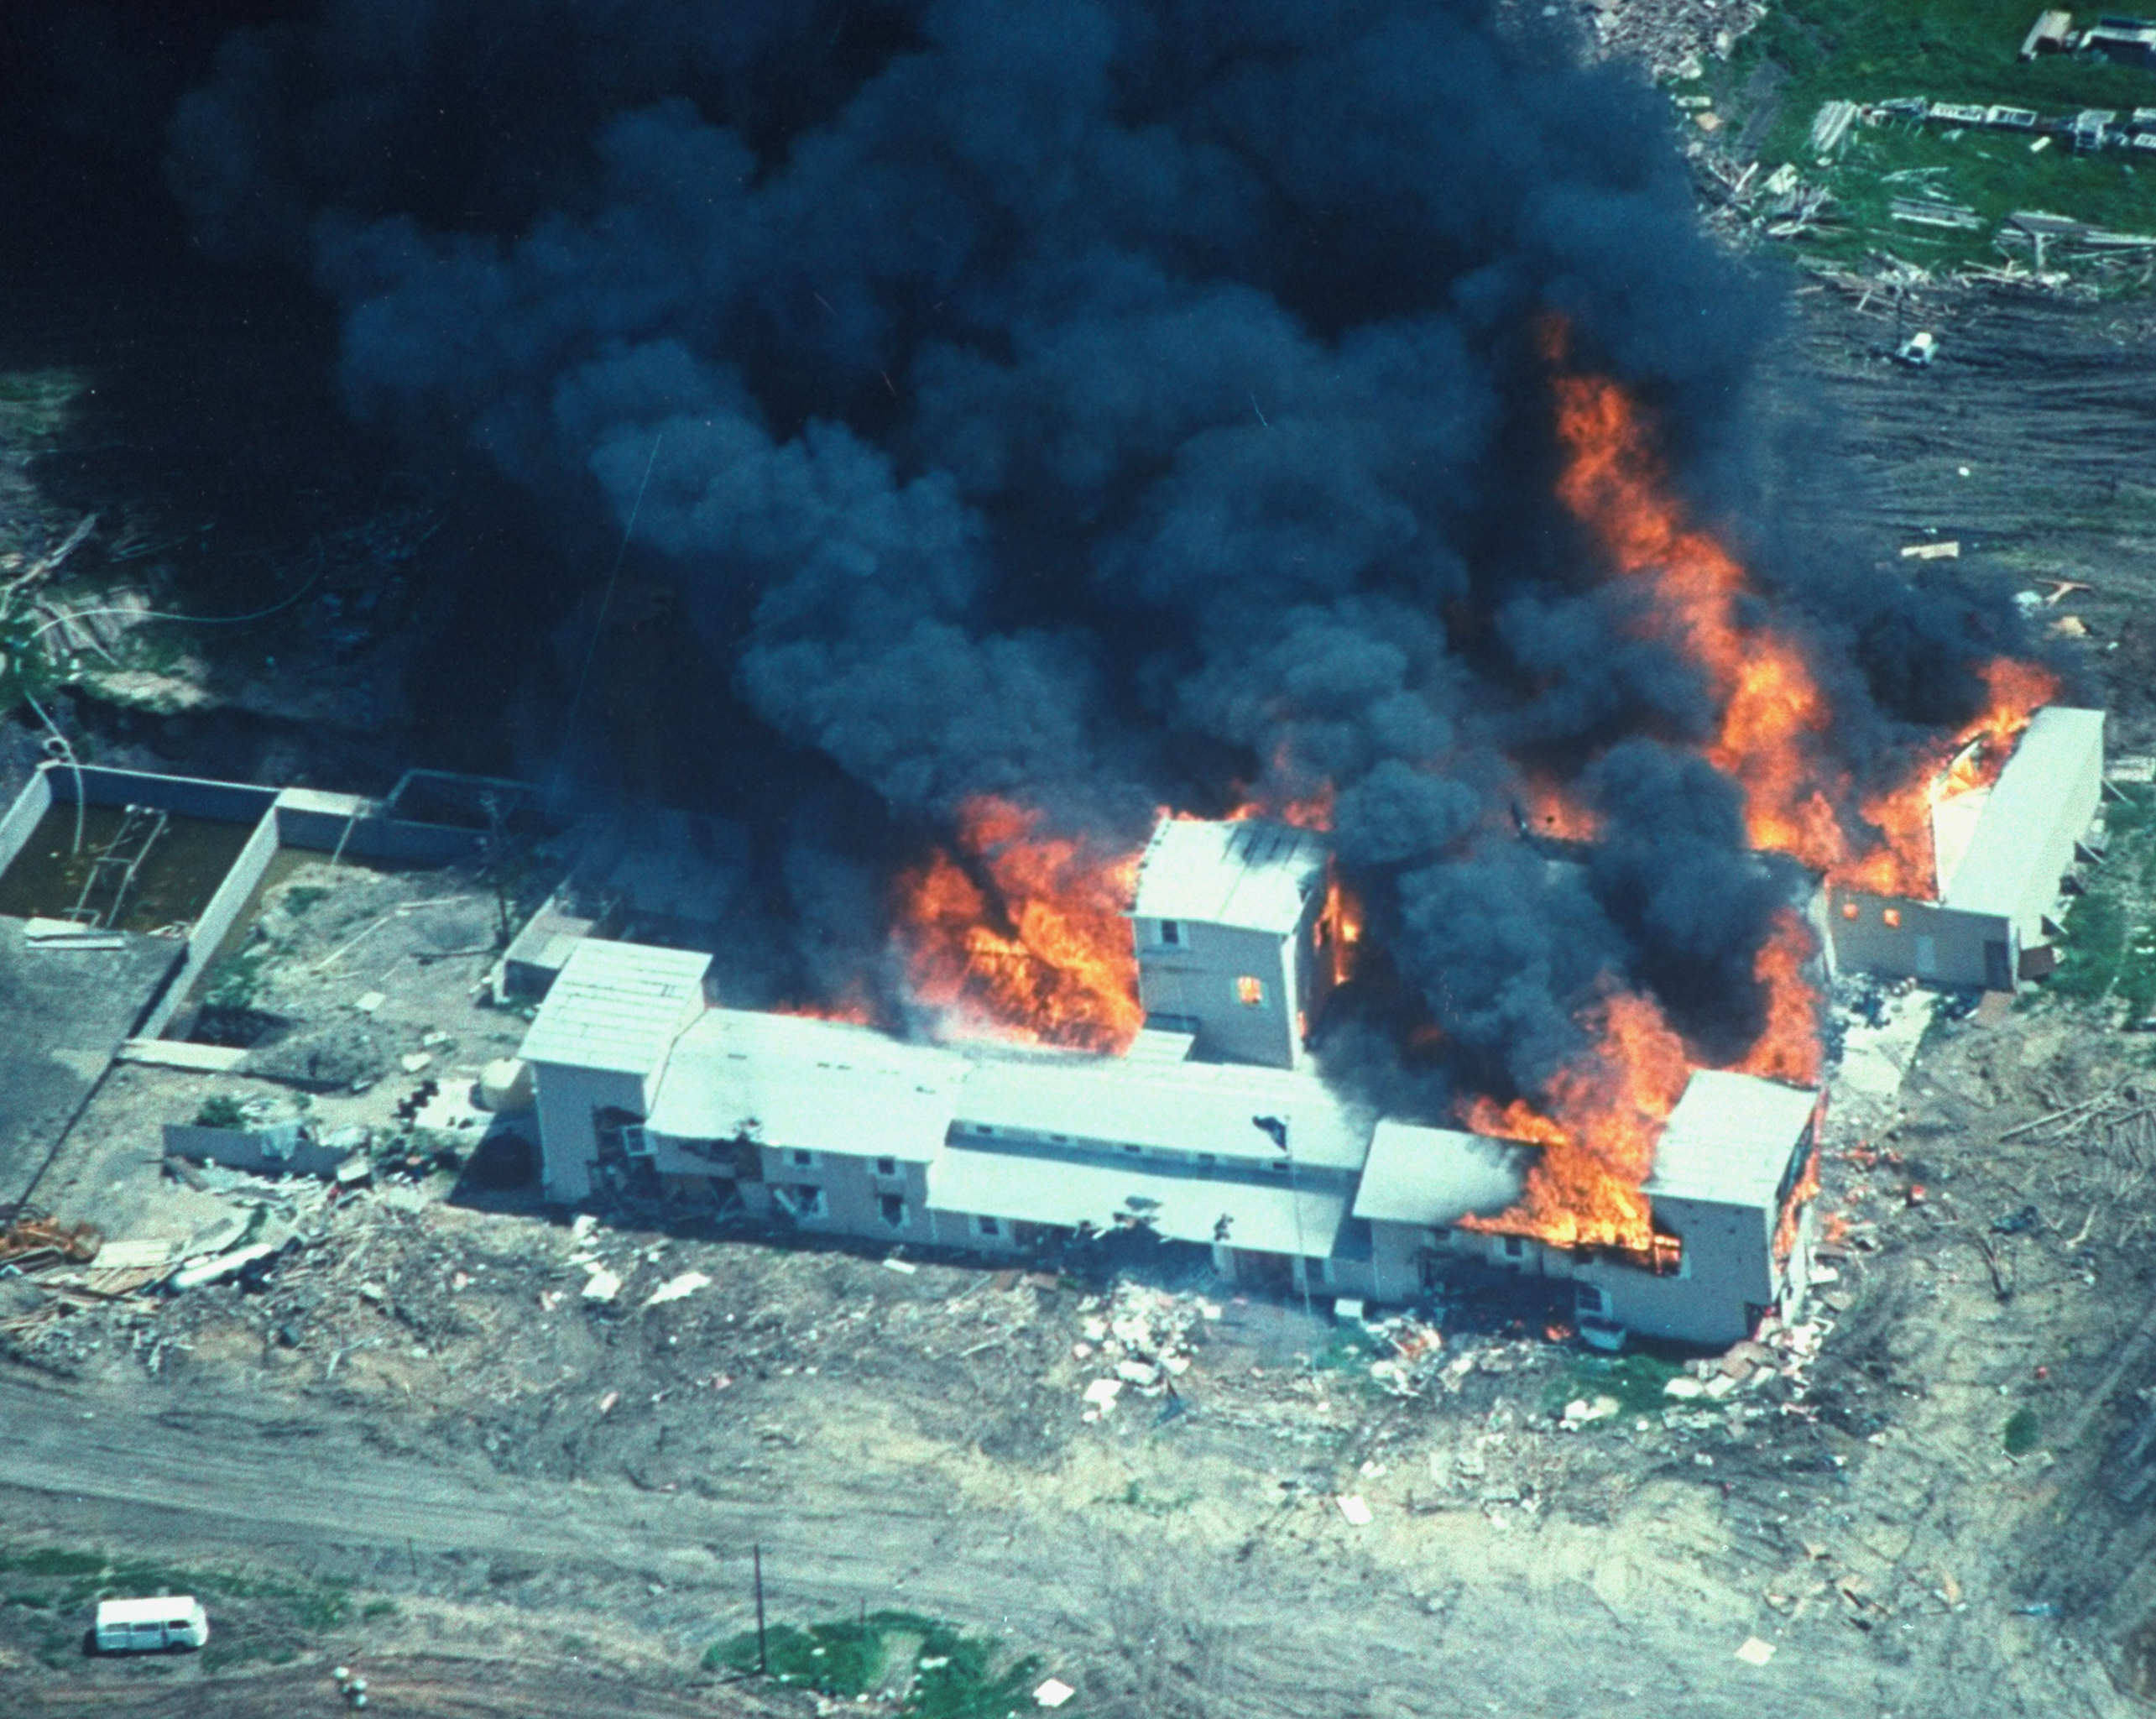 The Waco Siege: 6 Little-Known Facts